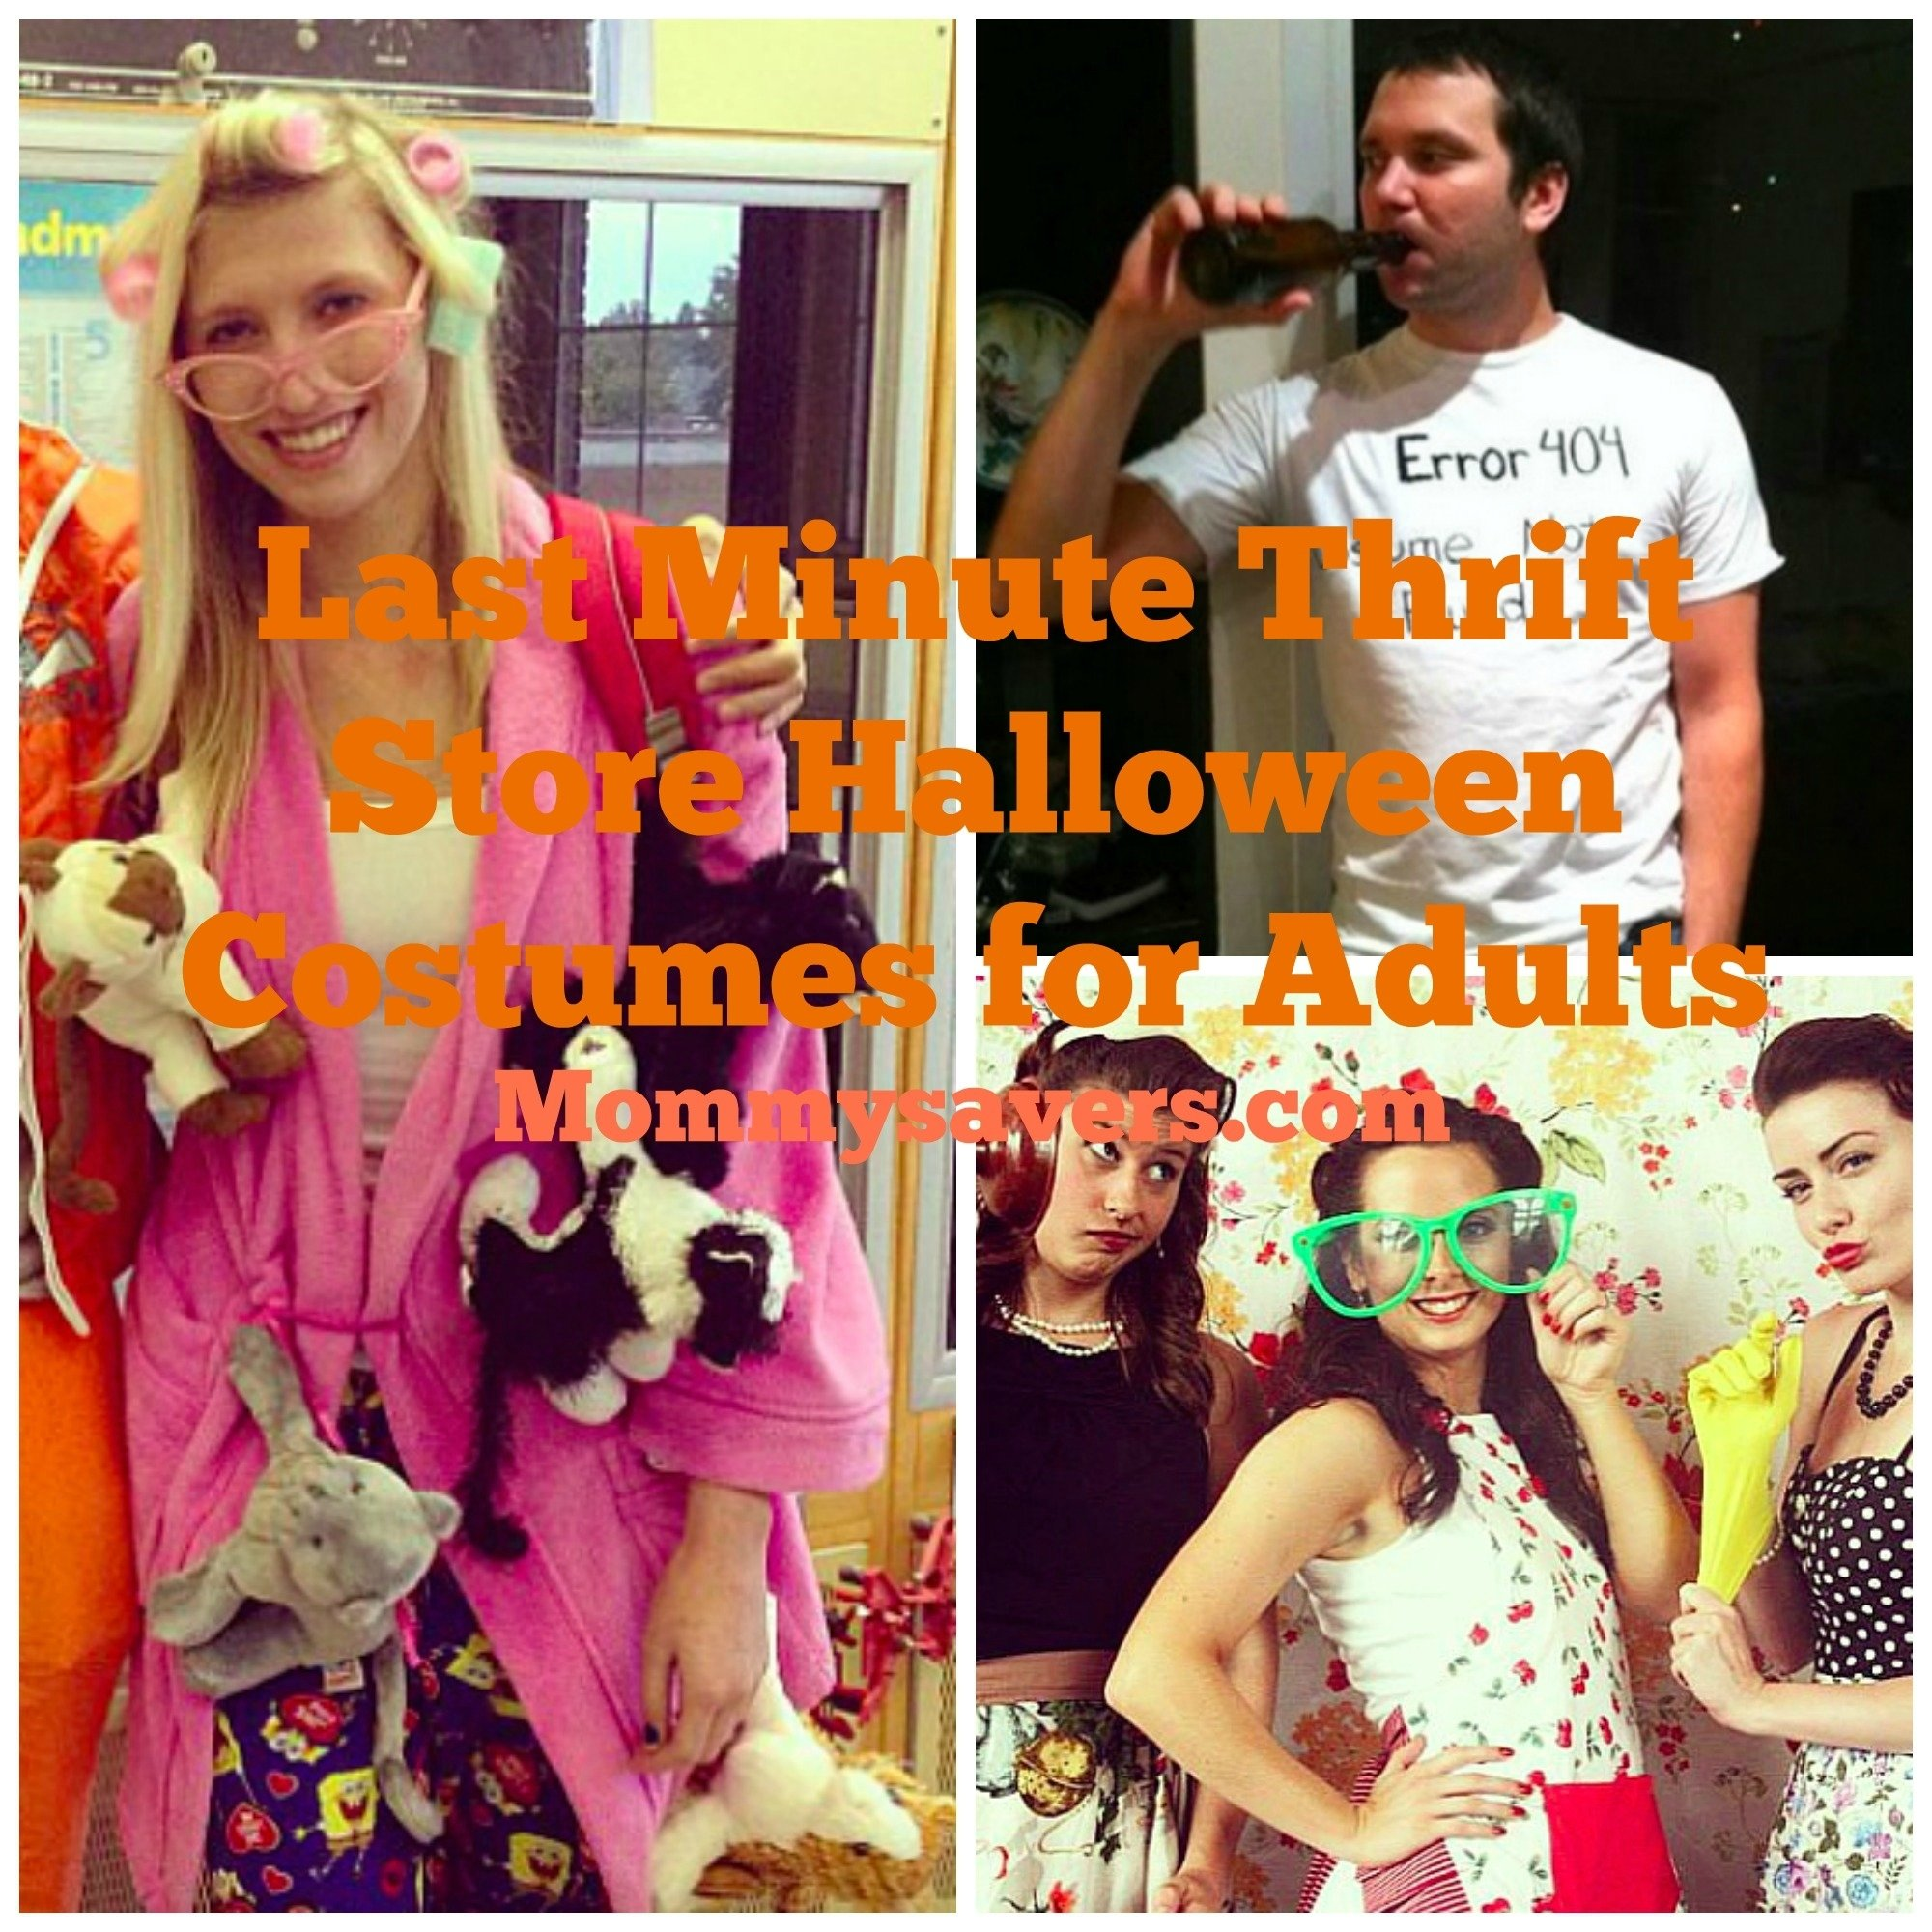 10 Attractive Last Minute Funny Halloween Costume Ideas last minute thrift store halloween costume ideas for adults 1 2021